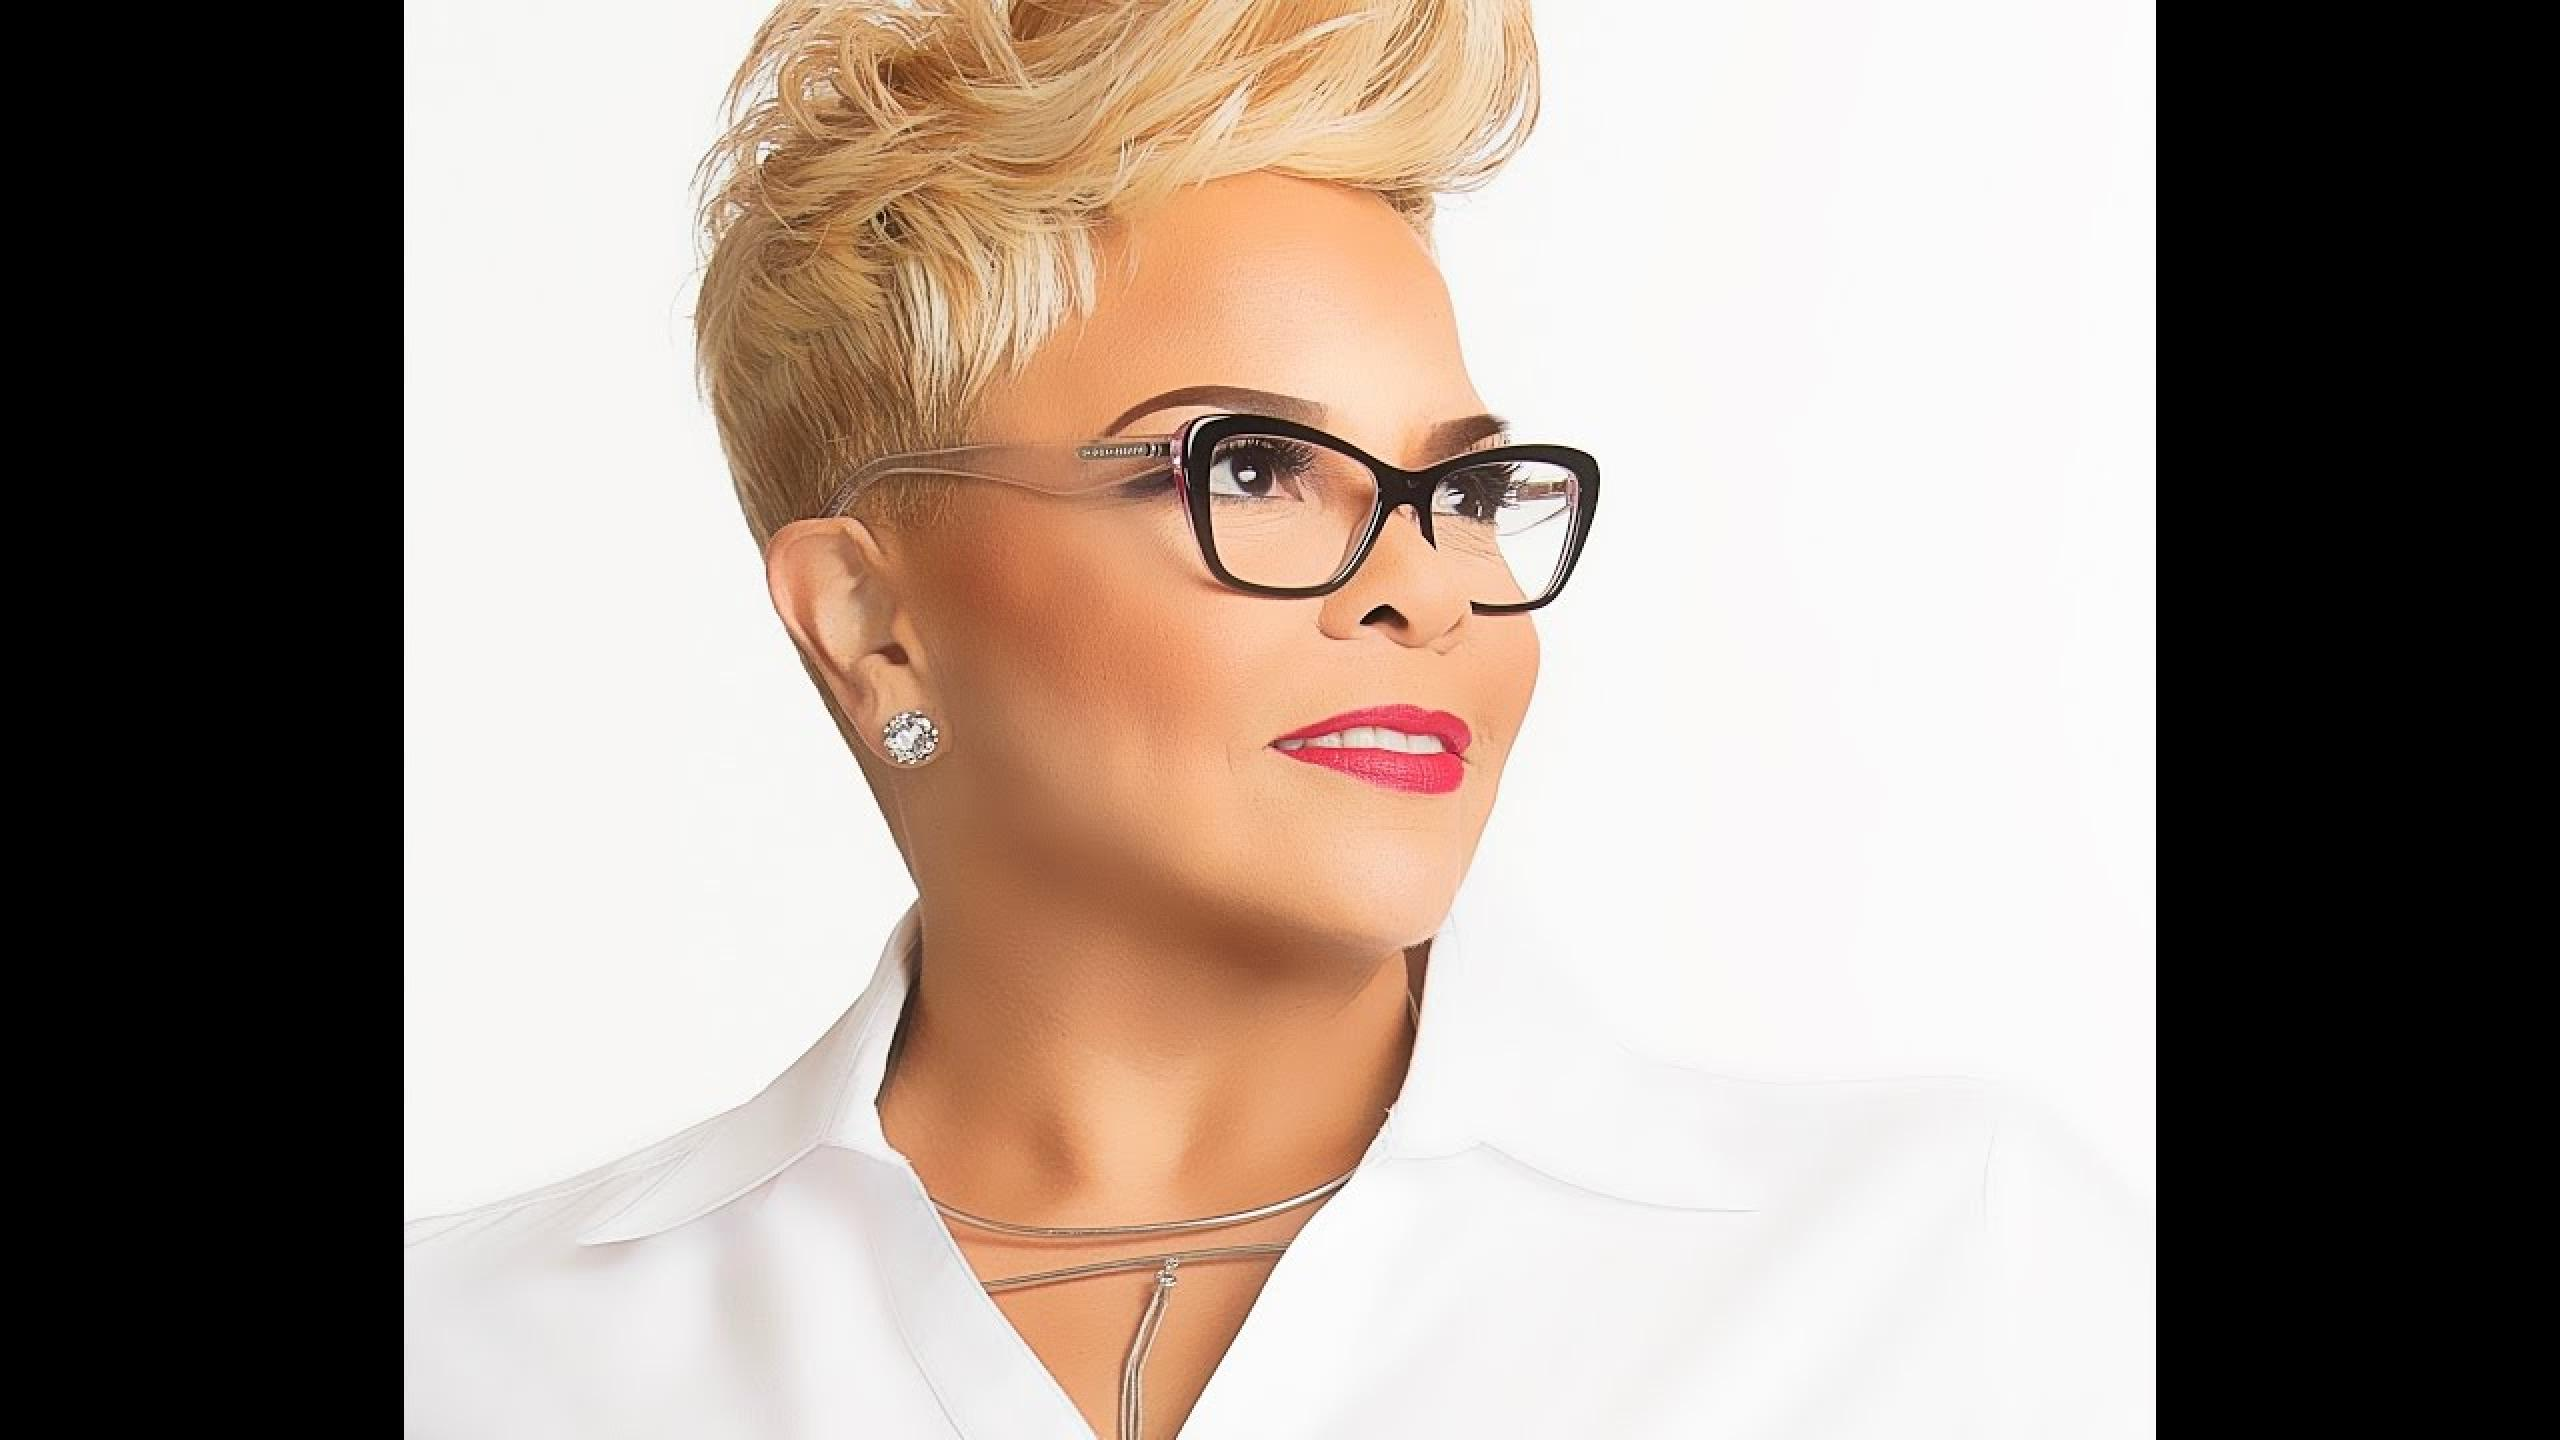 Tamela Mann Tour Dates 2020 Tamela Mann tour dates 2019 2020. Tamela Mann tickets and concerts